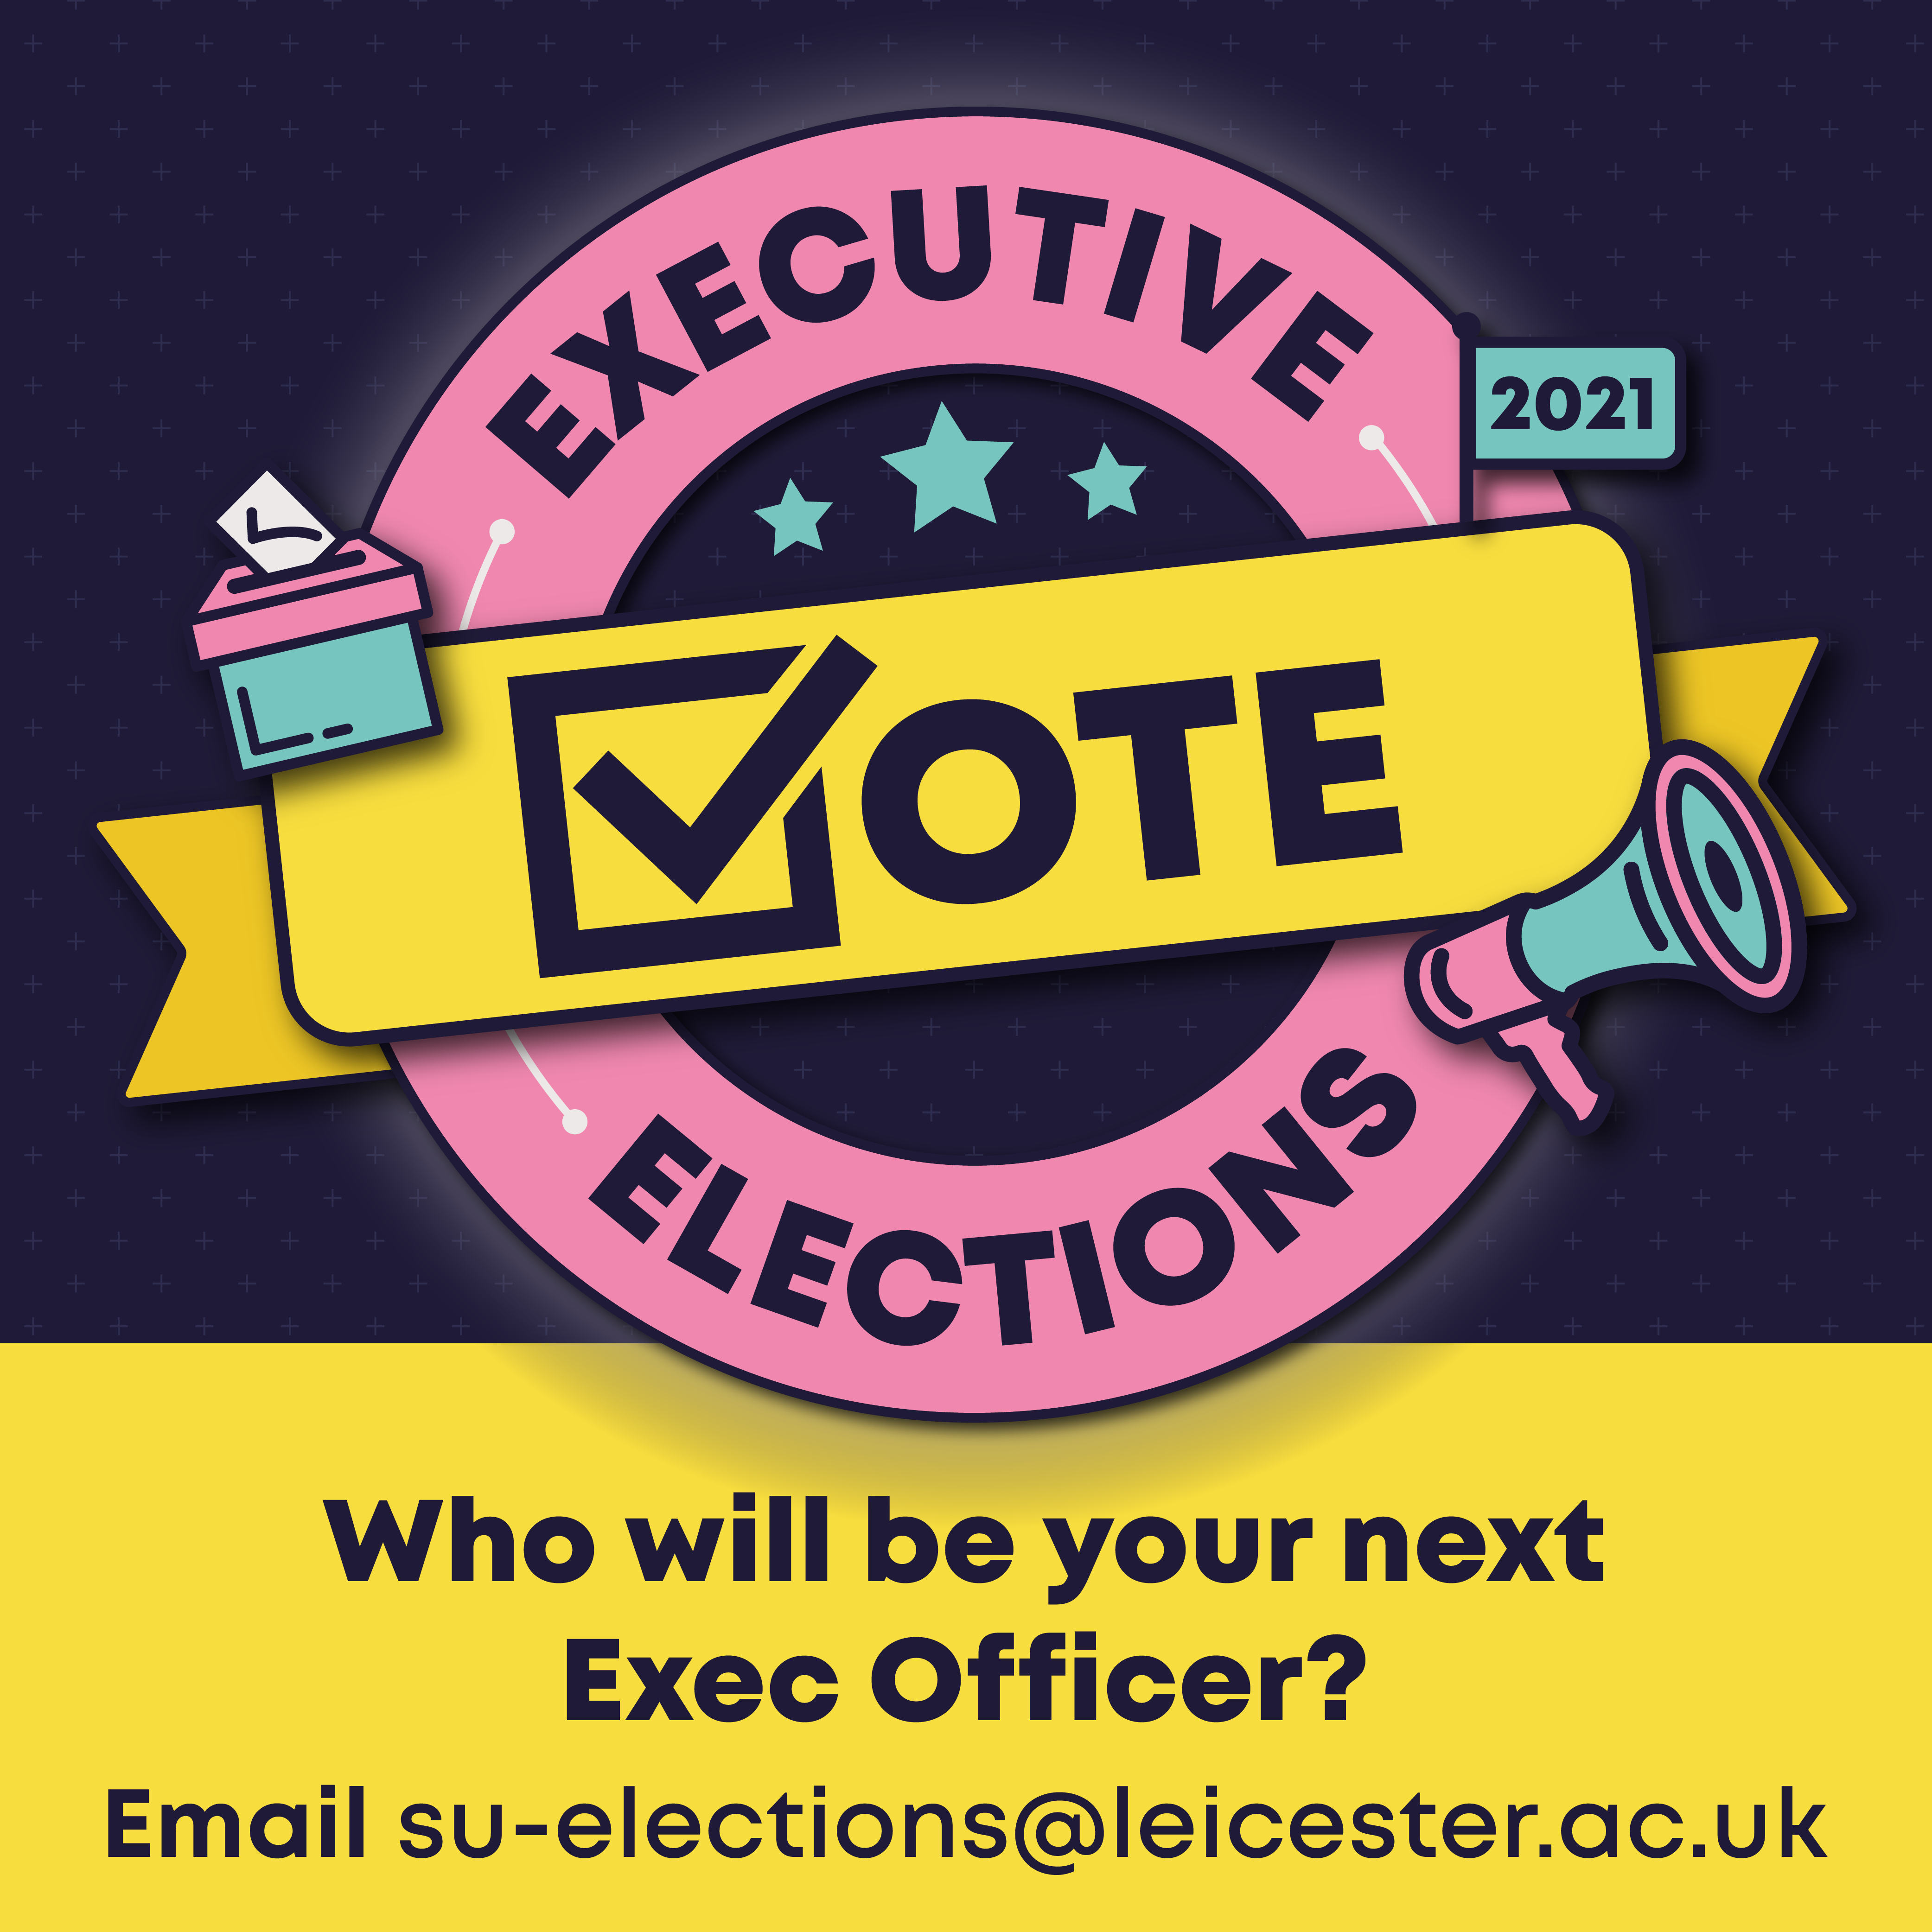 Executive Elections 2021. Are you the next Exec Officer? Email su-elections@leicester.ac.uk